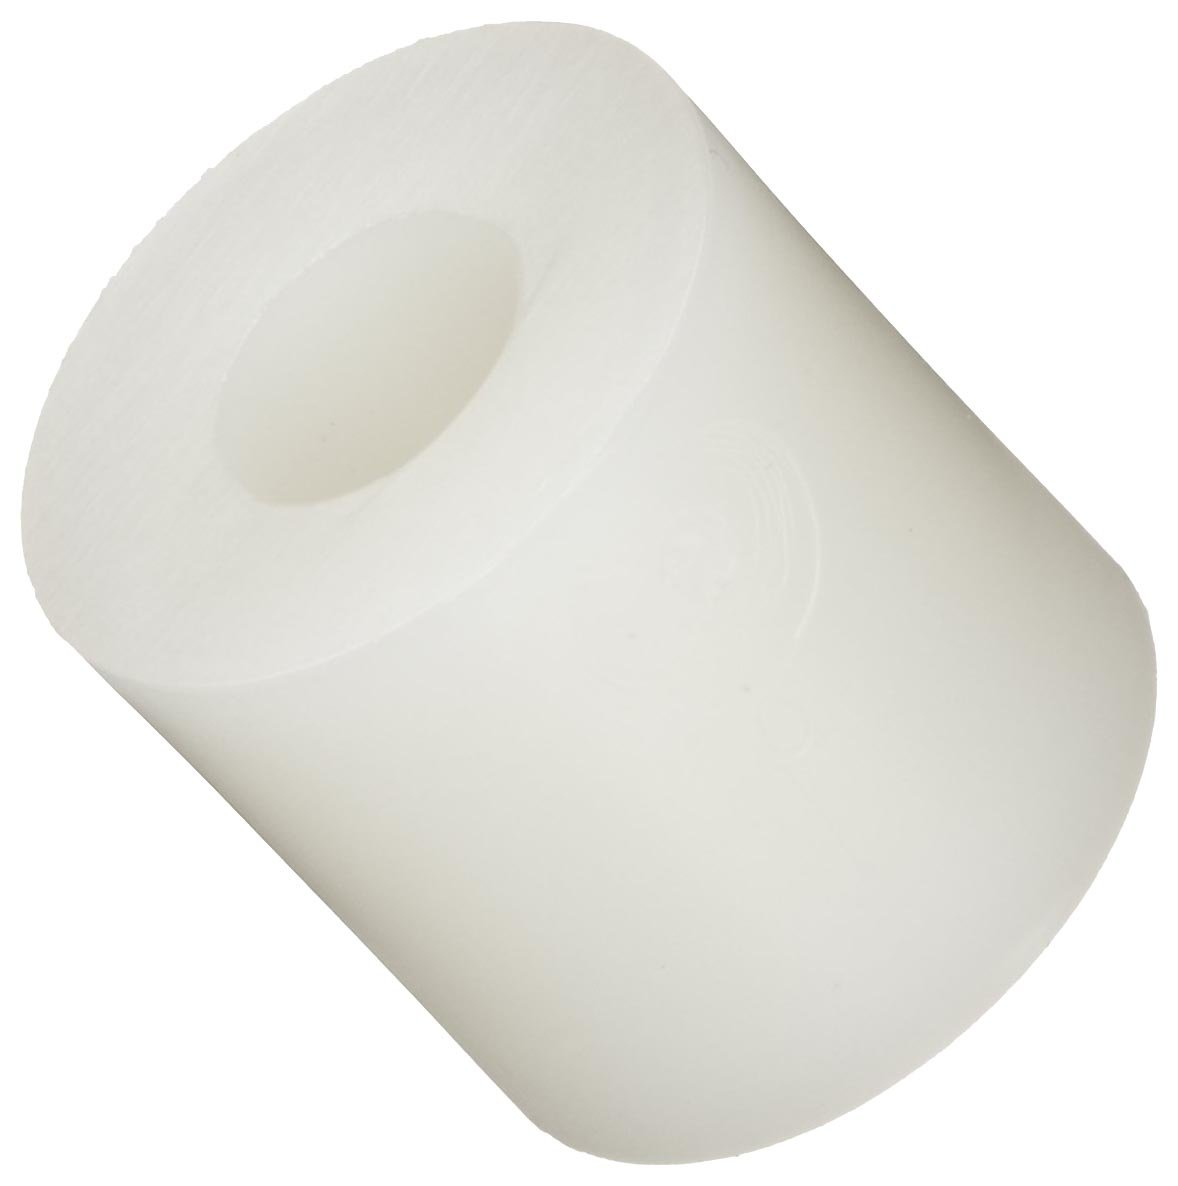 Pack of 100 Round Spacer Nylon Off-White #6 Screw Size 0.047 Length